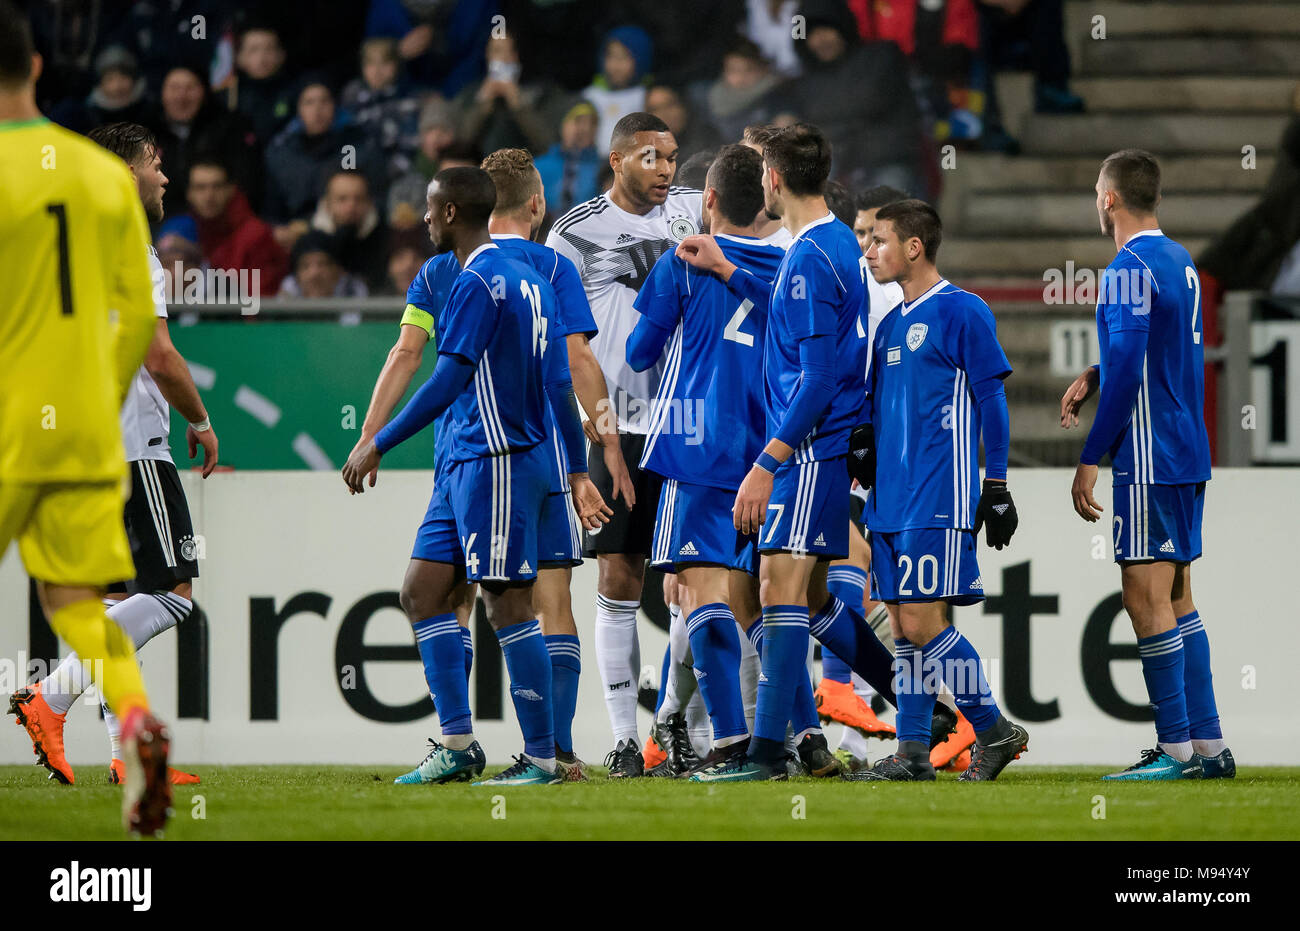 Braunschweig, Deutschland. 22nd Mar, 2018. Gerangel zwischen Spieler beider Mannschaften (u.a. with Jonathan Tah) GES/ Fussball/ U 21: Germany - Israel, 22.03.2018 -- Football/ Soccer Under 21: Deutschcland vs Israel, Braunschweig, March 22, 2018 -- |usage worldwide Credit: dpa/Alamy Live News Stock Photo